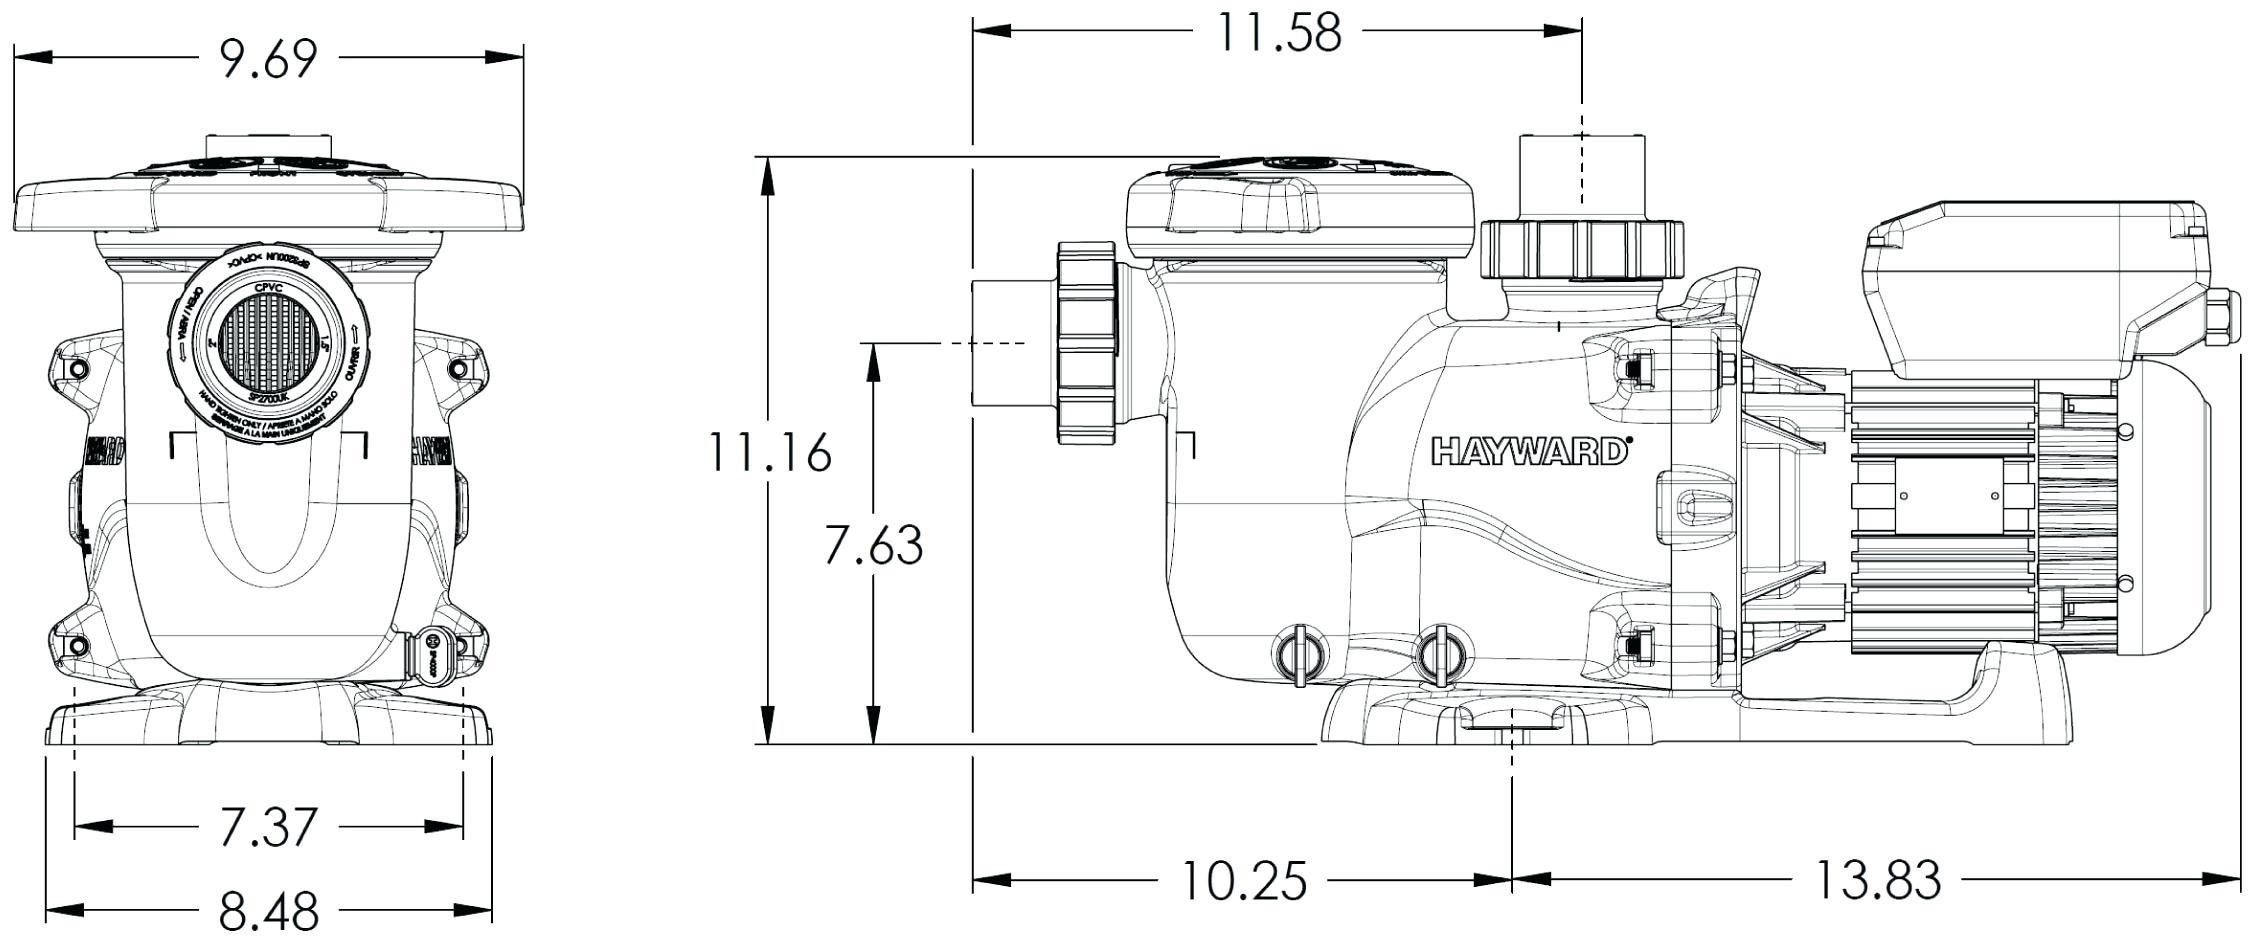 Hayward super Ii Pump manual on